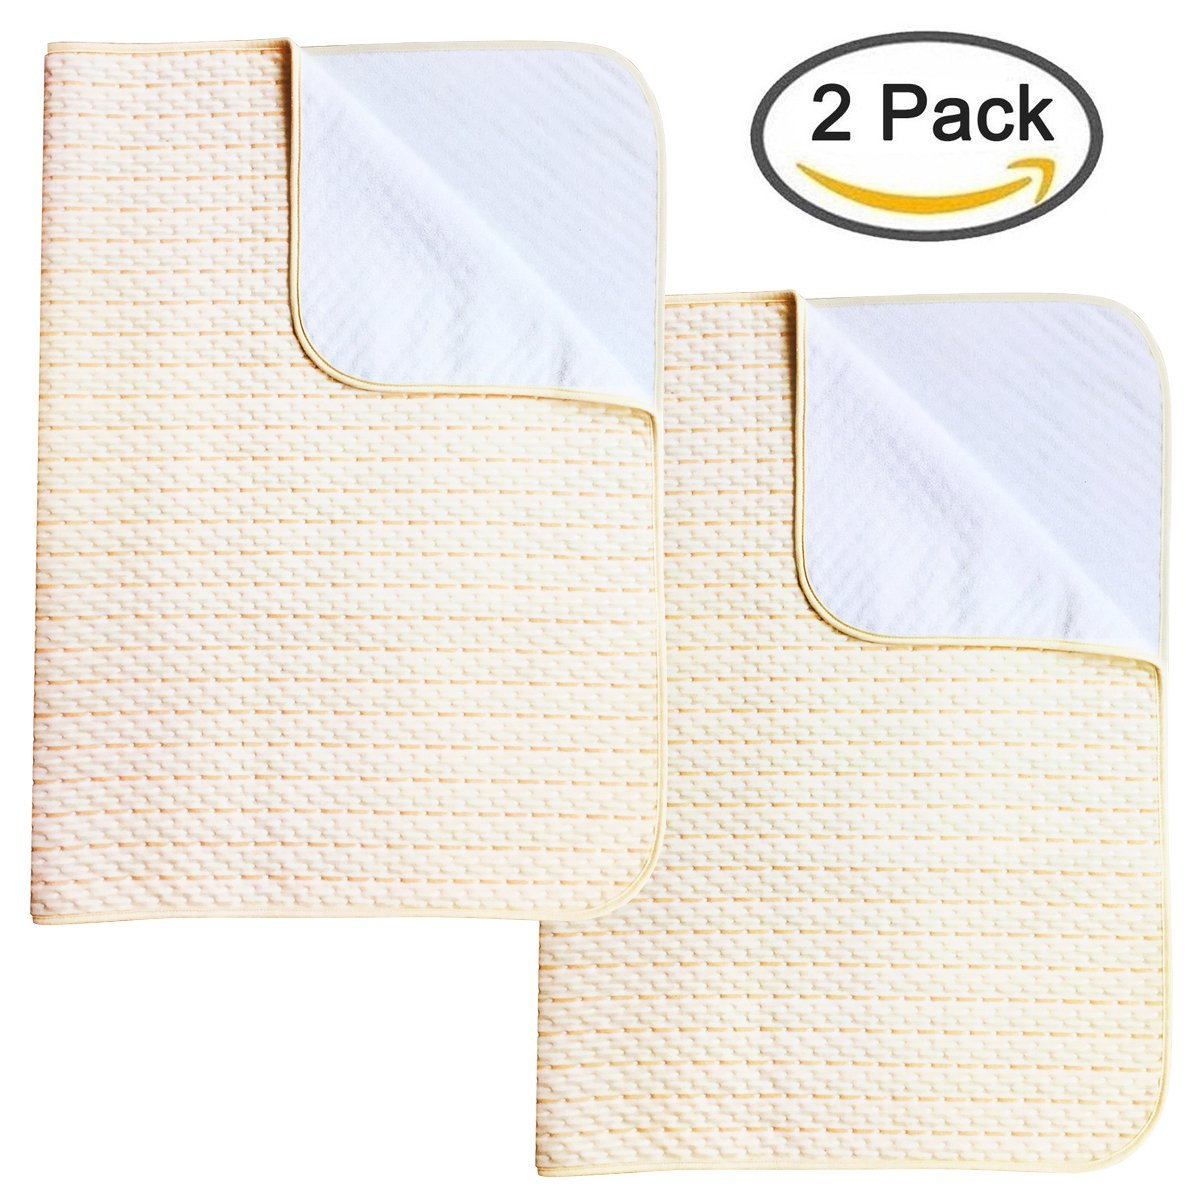 Ultra Waterproof Sheet and Incontinence Bed Pad, Mattress Protector for Toddler Children Adults (2 Pack)